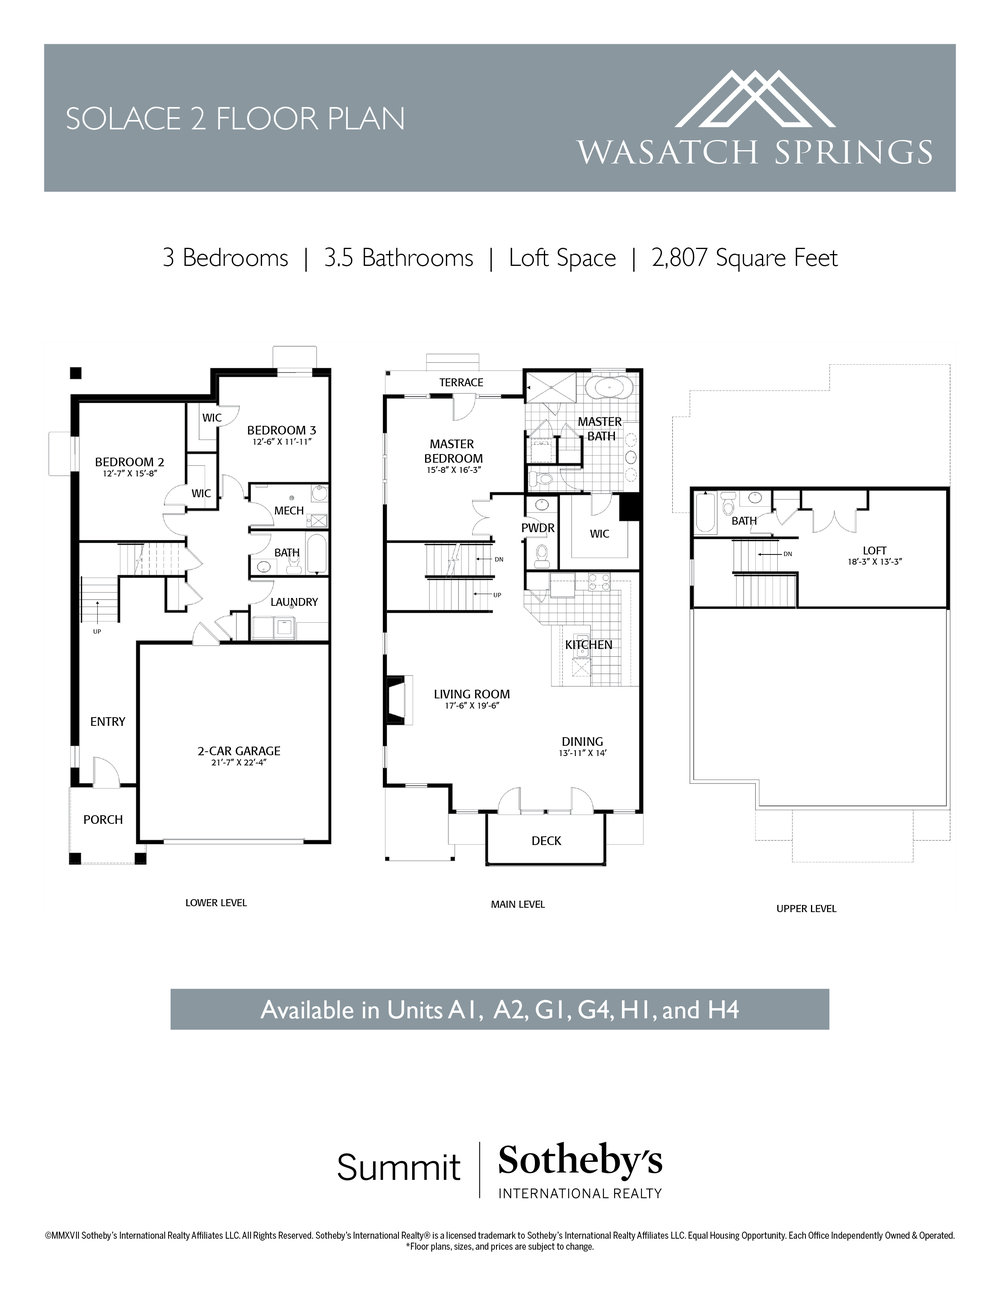 Wasatch Springs Inserts - Solace 2 Floorplan.jpg